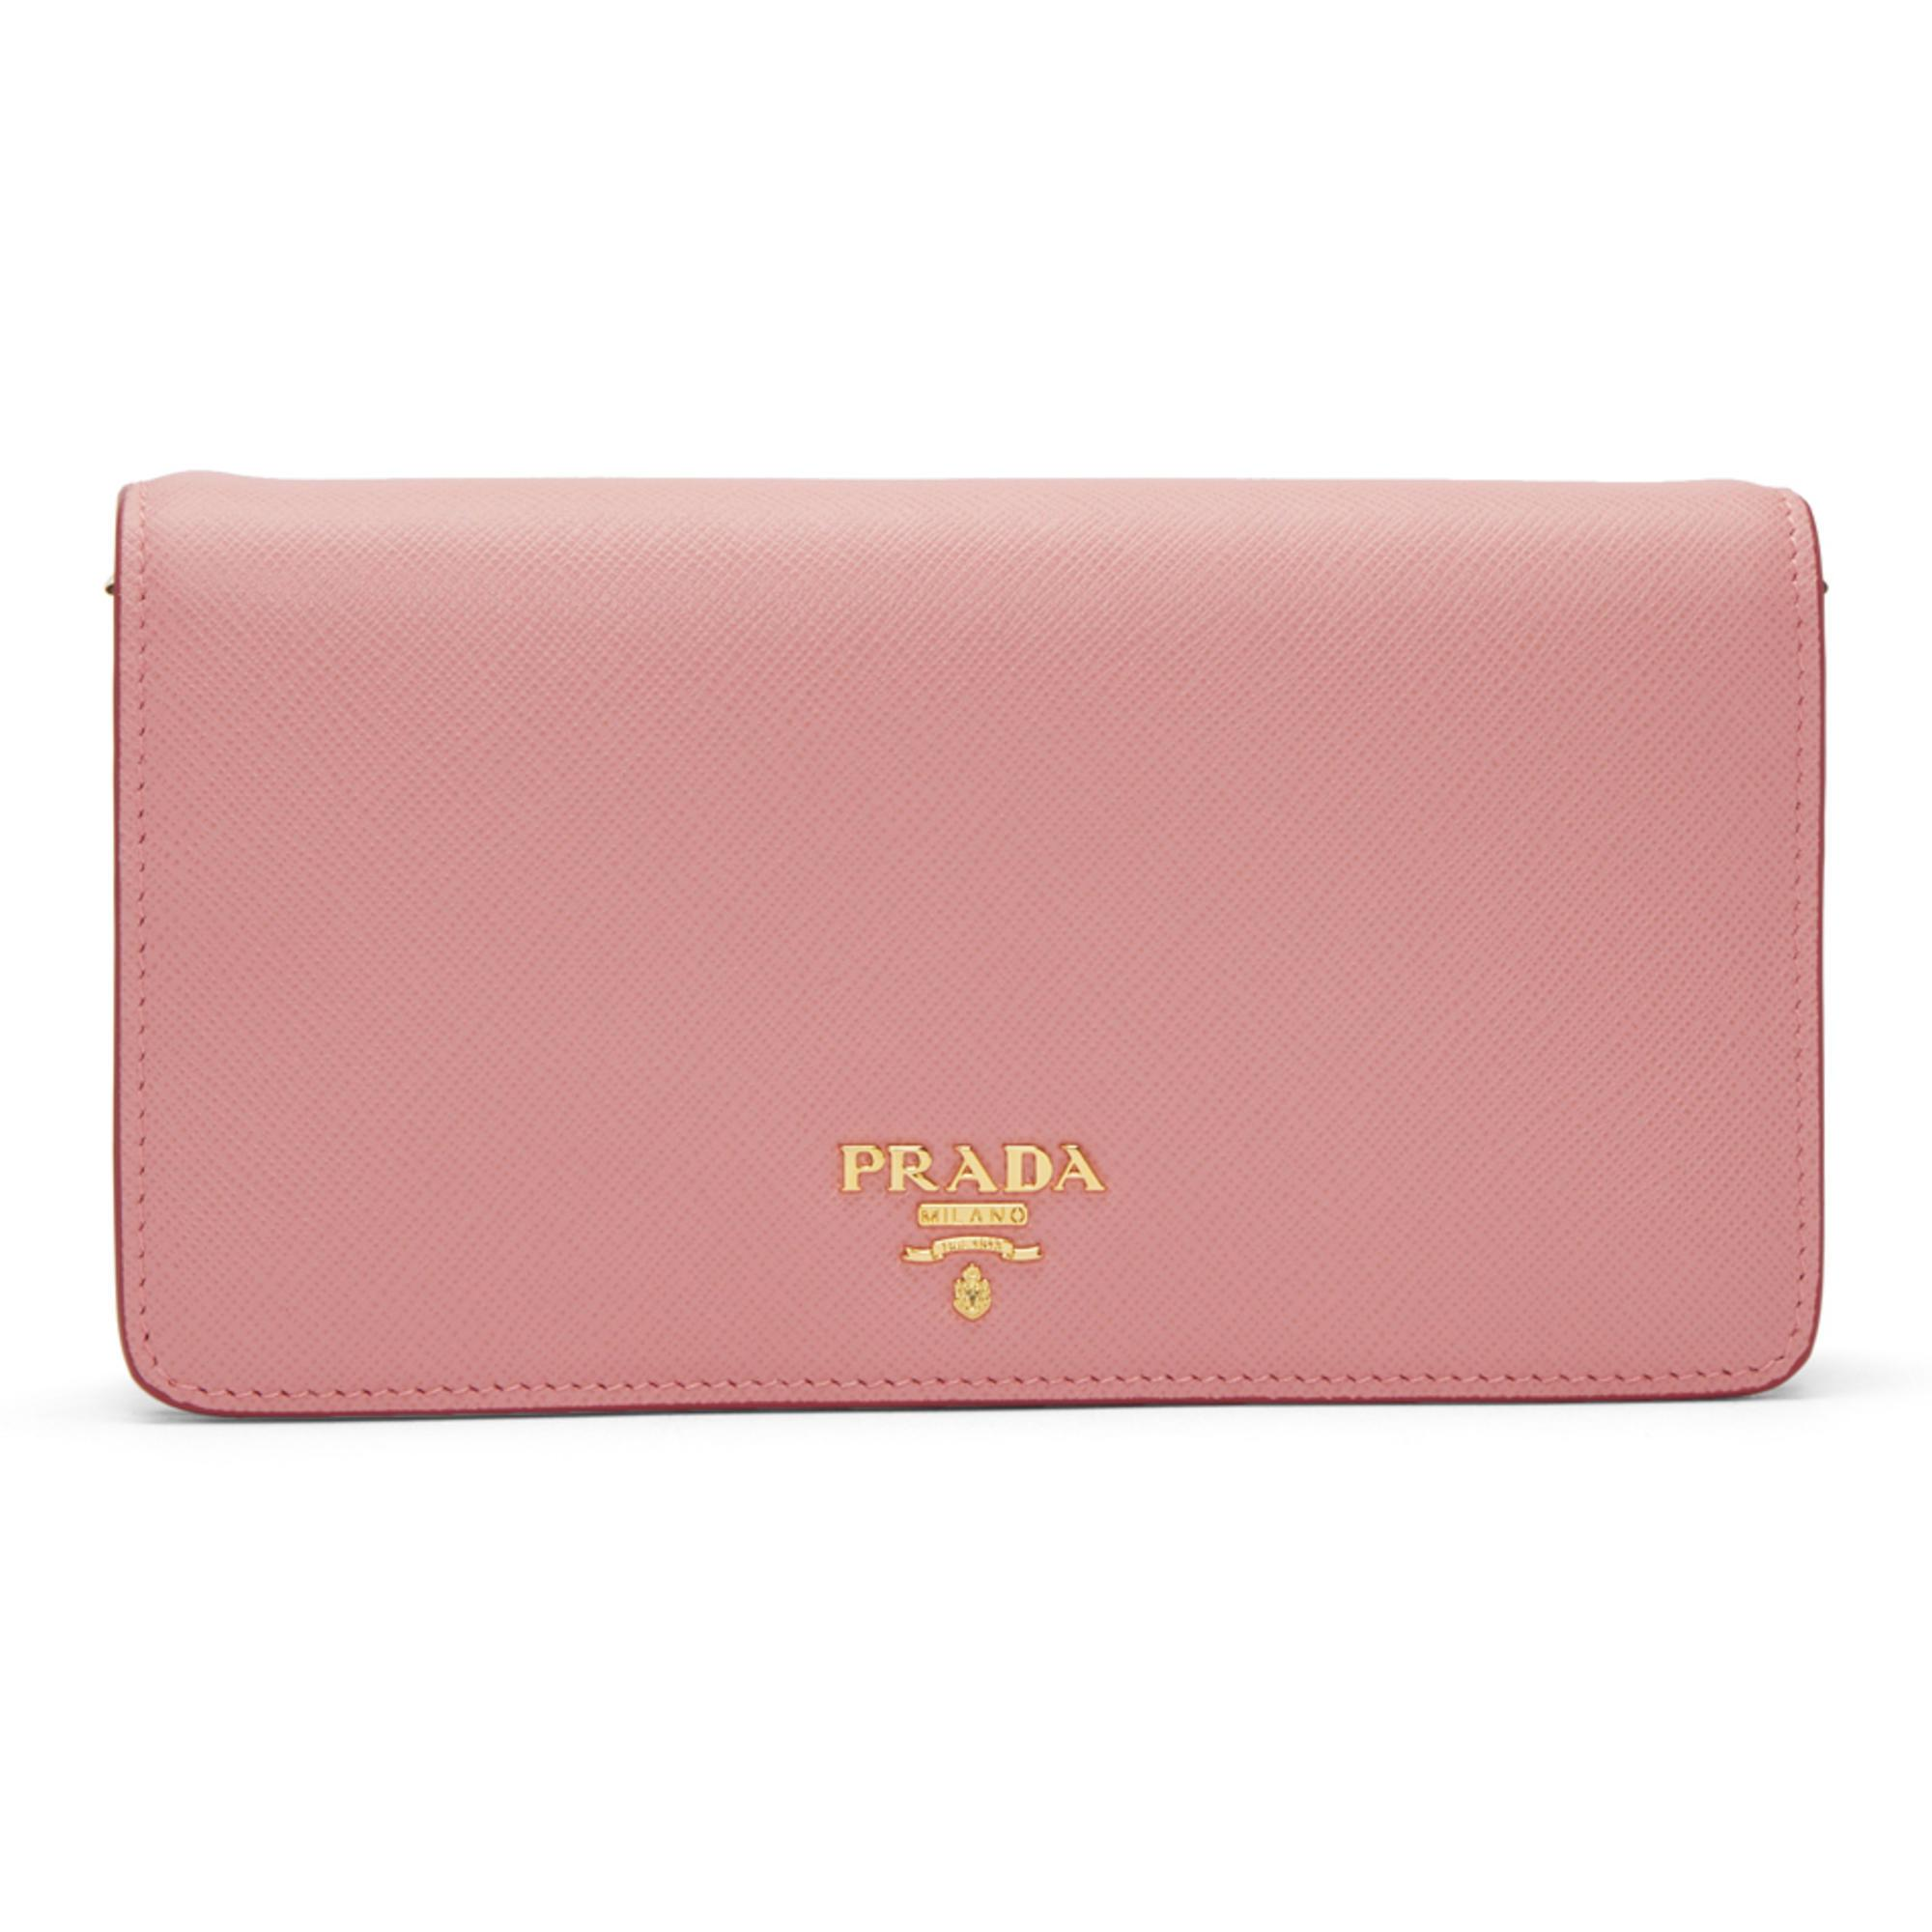 0f8a3551b0ba ... top quality prada pink mini cellphone sleeve bag in pink lyst 561ff  2cf62